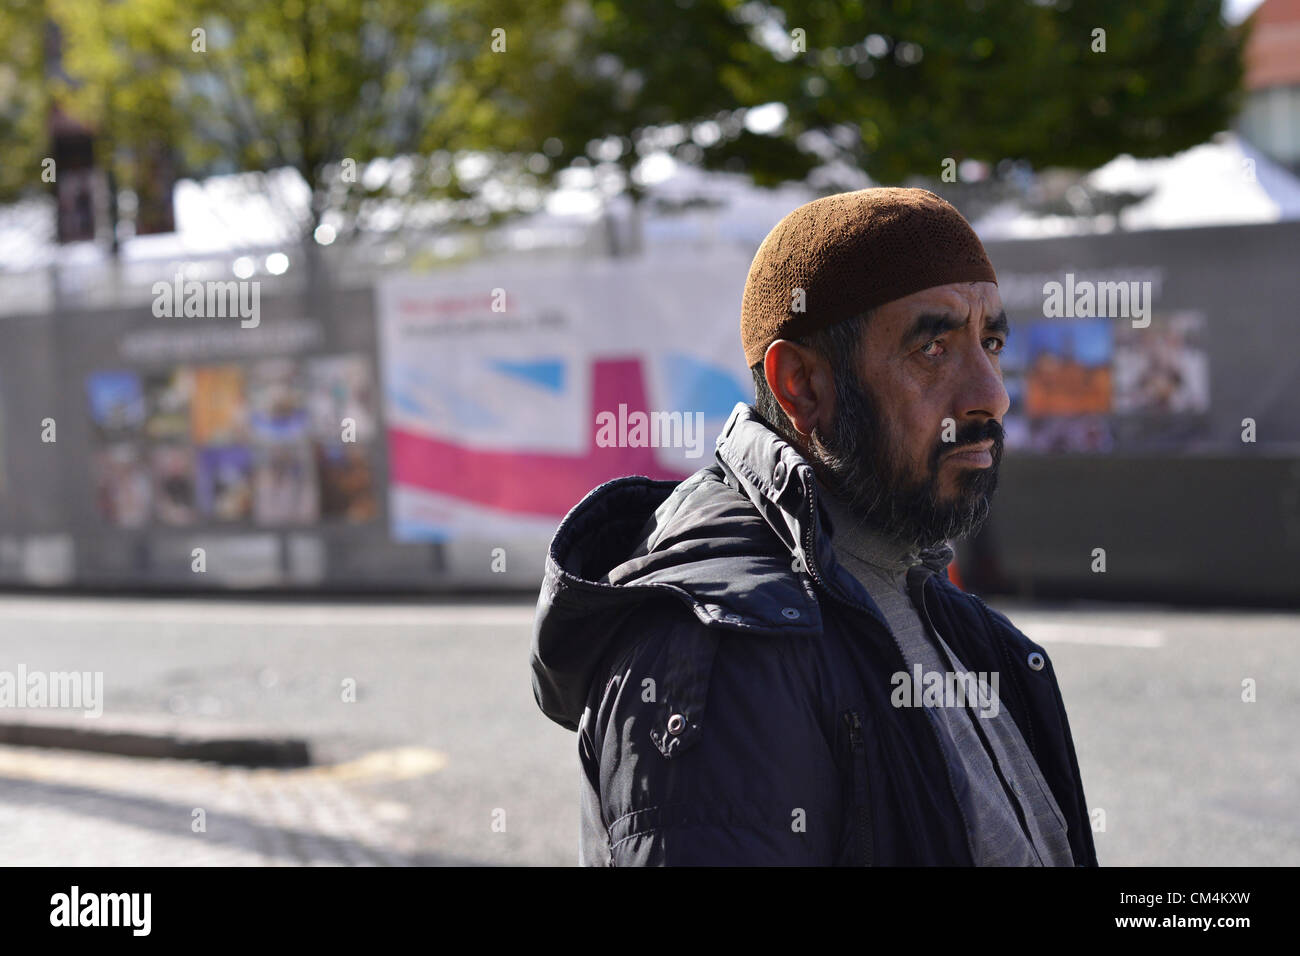 Manchester, UK. 3rd October 2012. A man walks past  Manchester Central, the venue for The Labour Party Annual Conference, - Stock Image